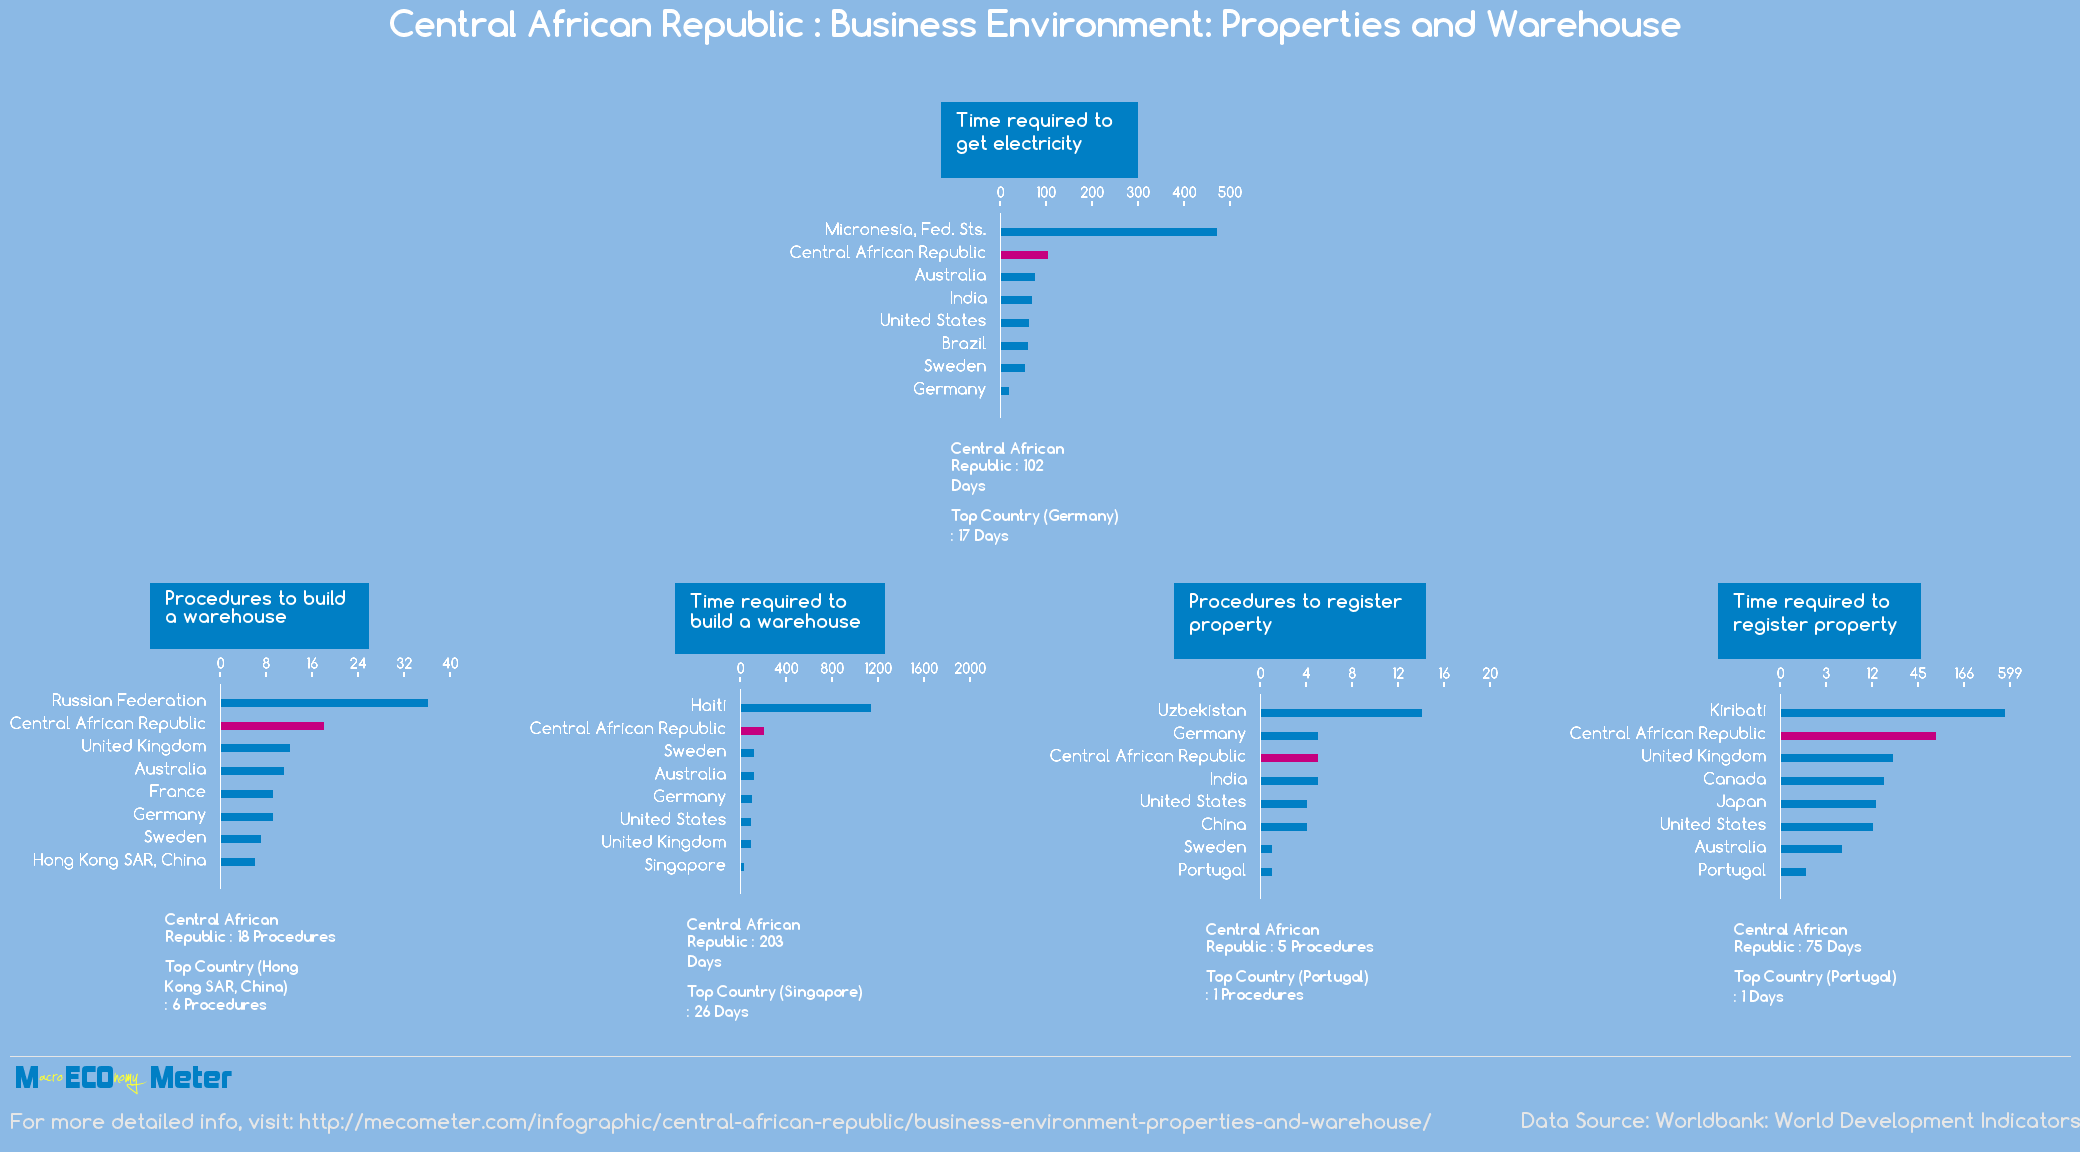 Central African Republic : Business Environment: Properties and Warehouse